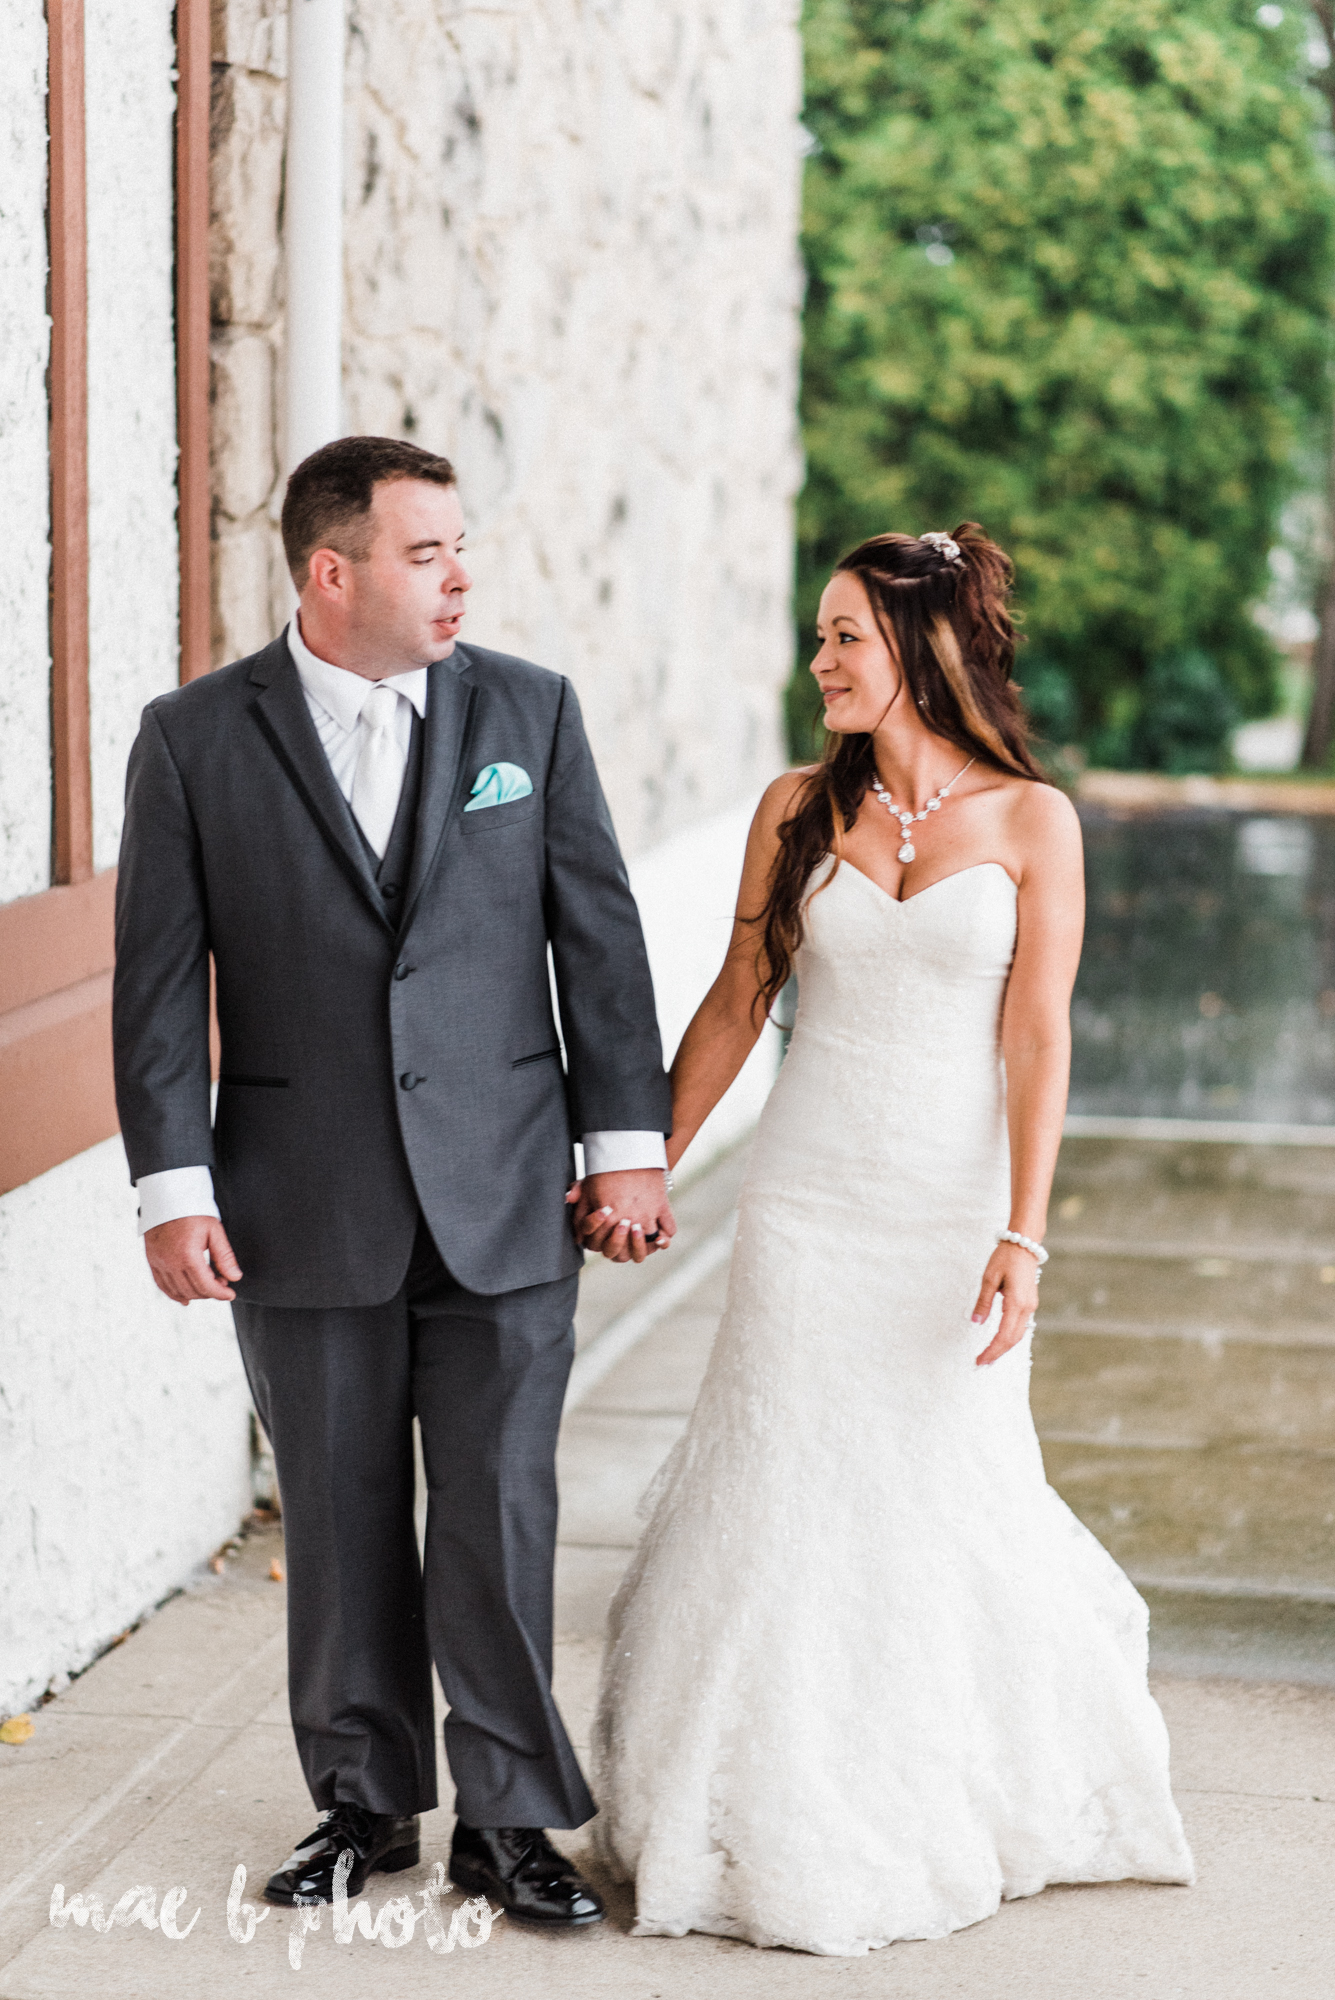 kristy and matt's summer wedding at the embassy in youngstown ohio photographed by youngstown wedding photographer mae b photo-20.jpg